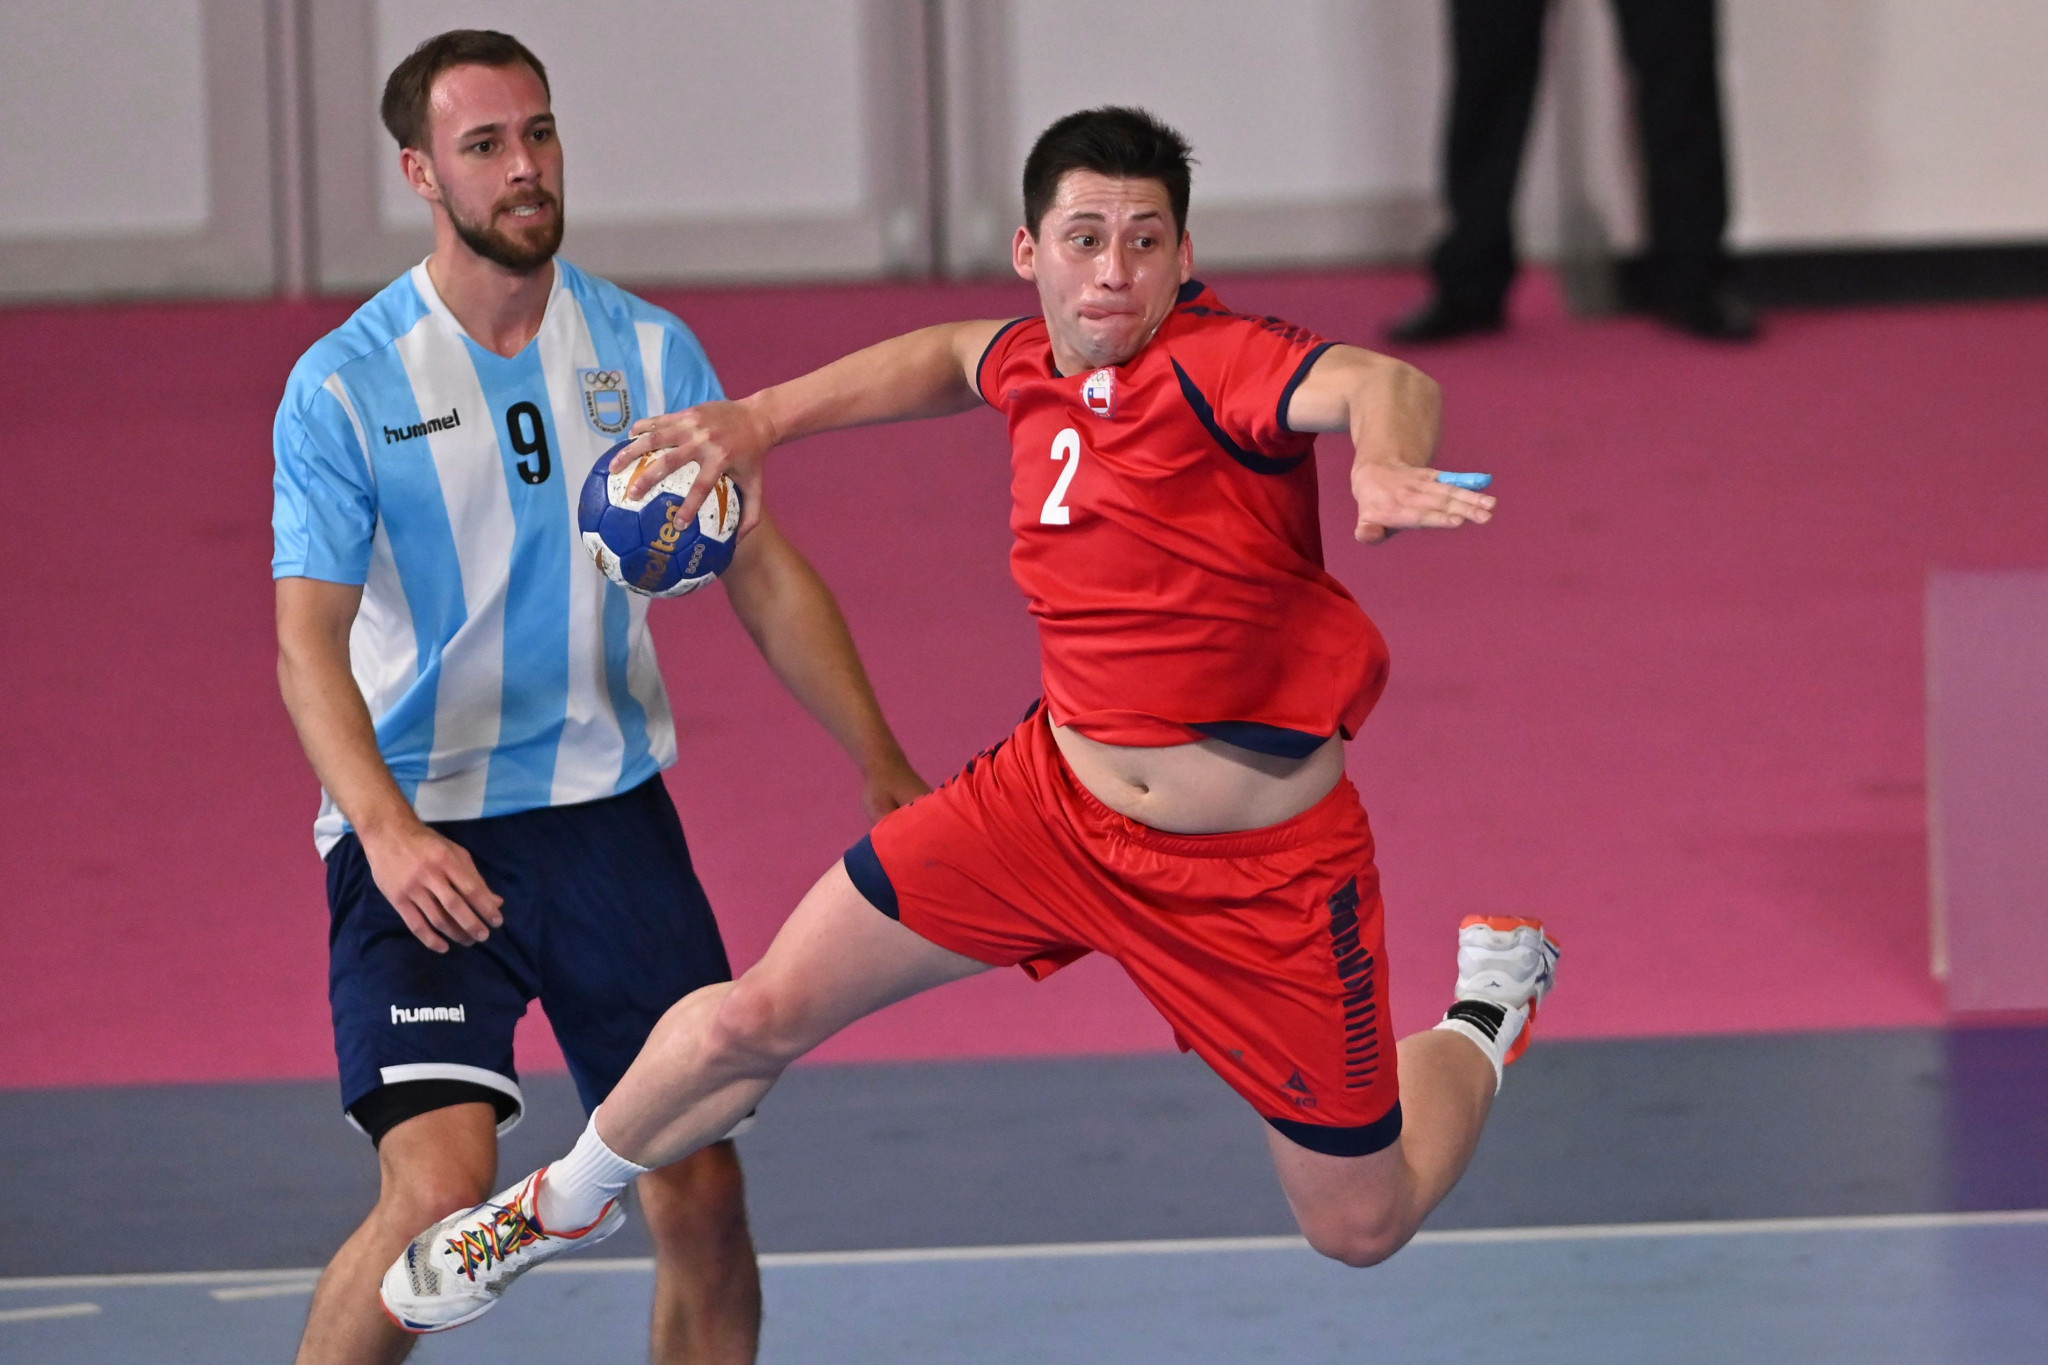 Chile handed place in IHF World Championship after qualifier cancelled